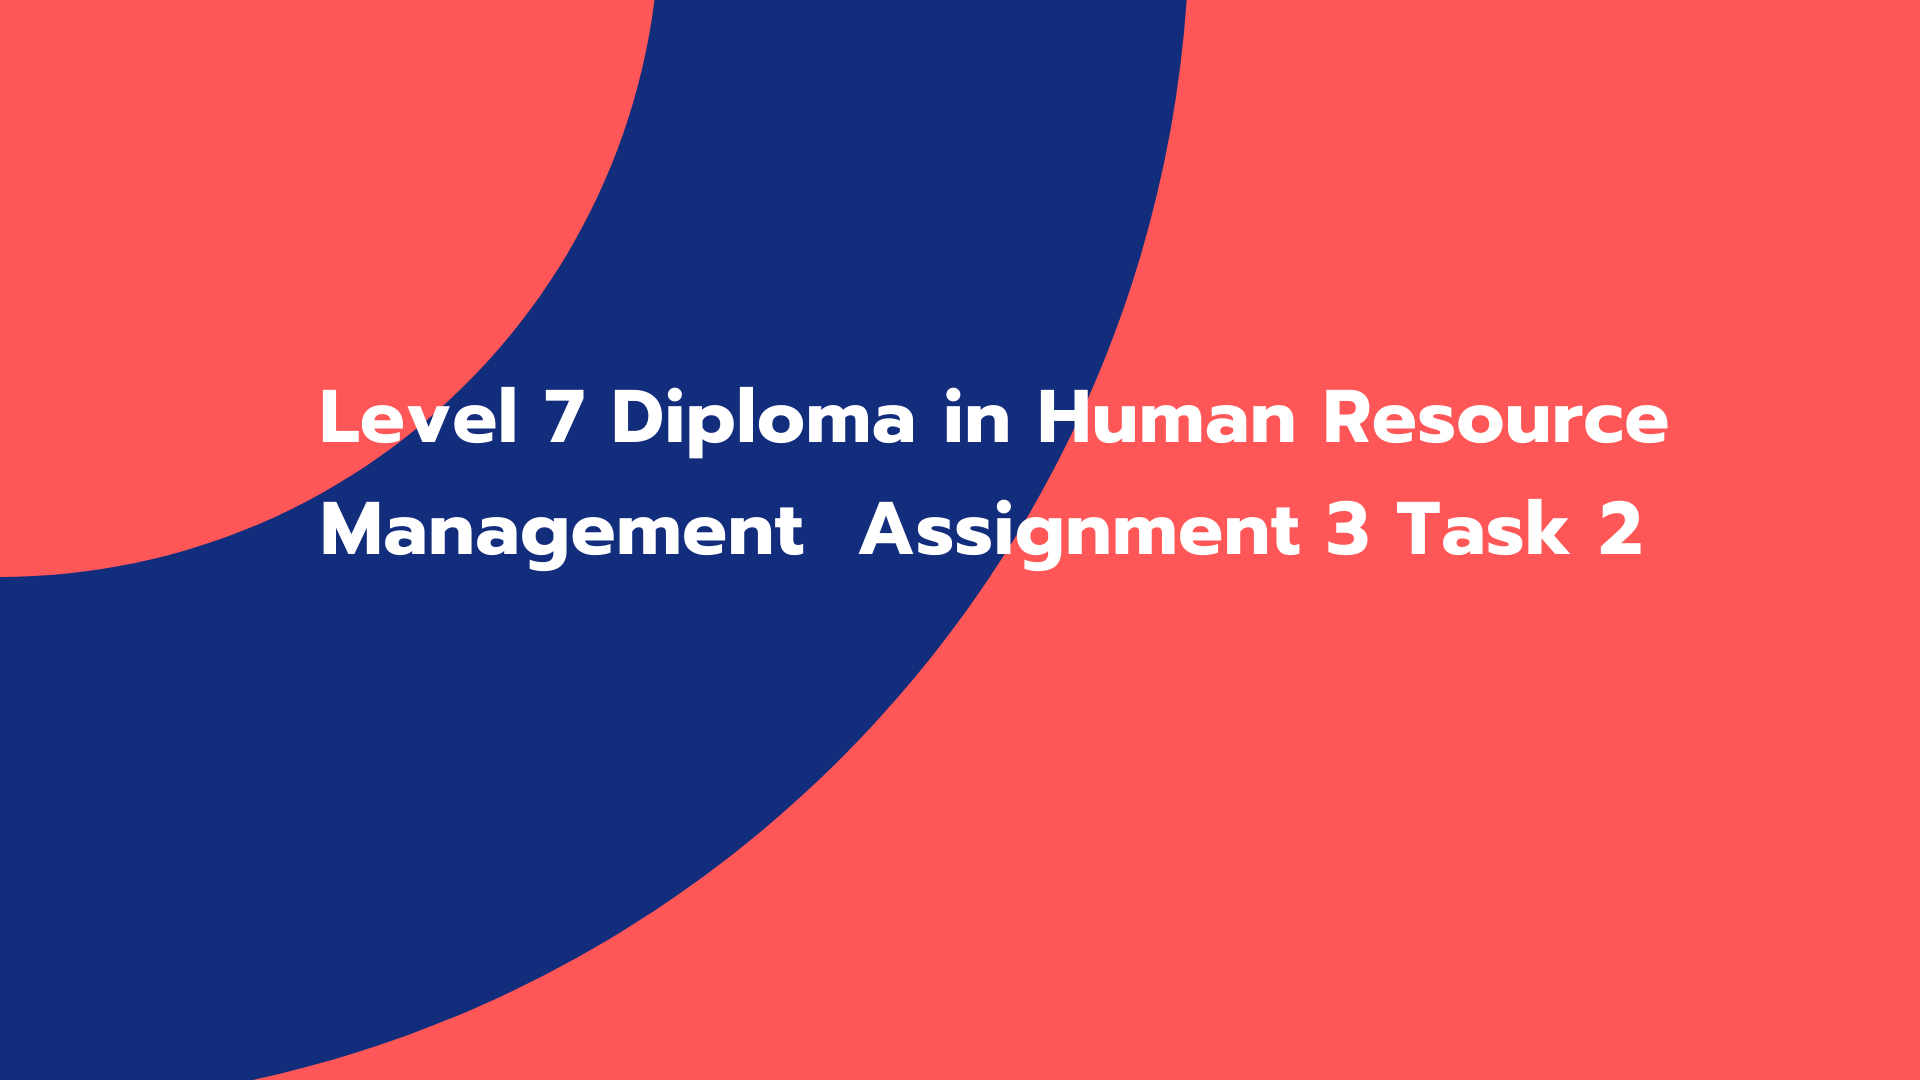 Level 7 Diploma in Human Resource Management Assignment 3 Task 2